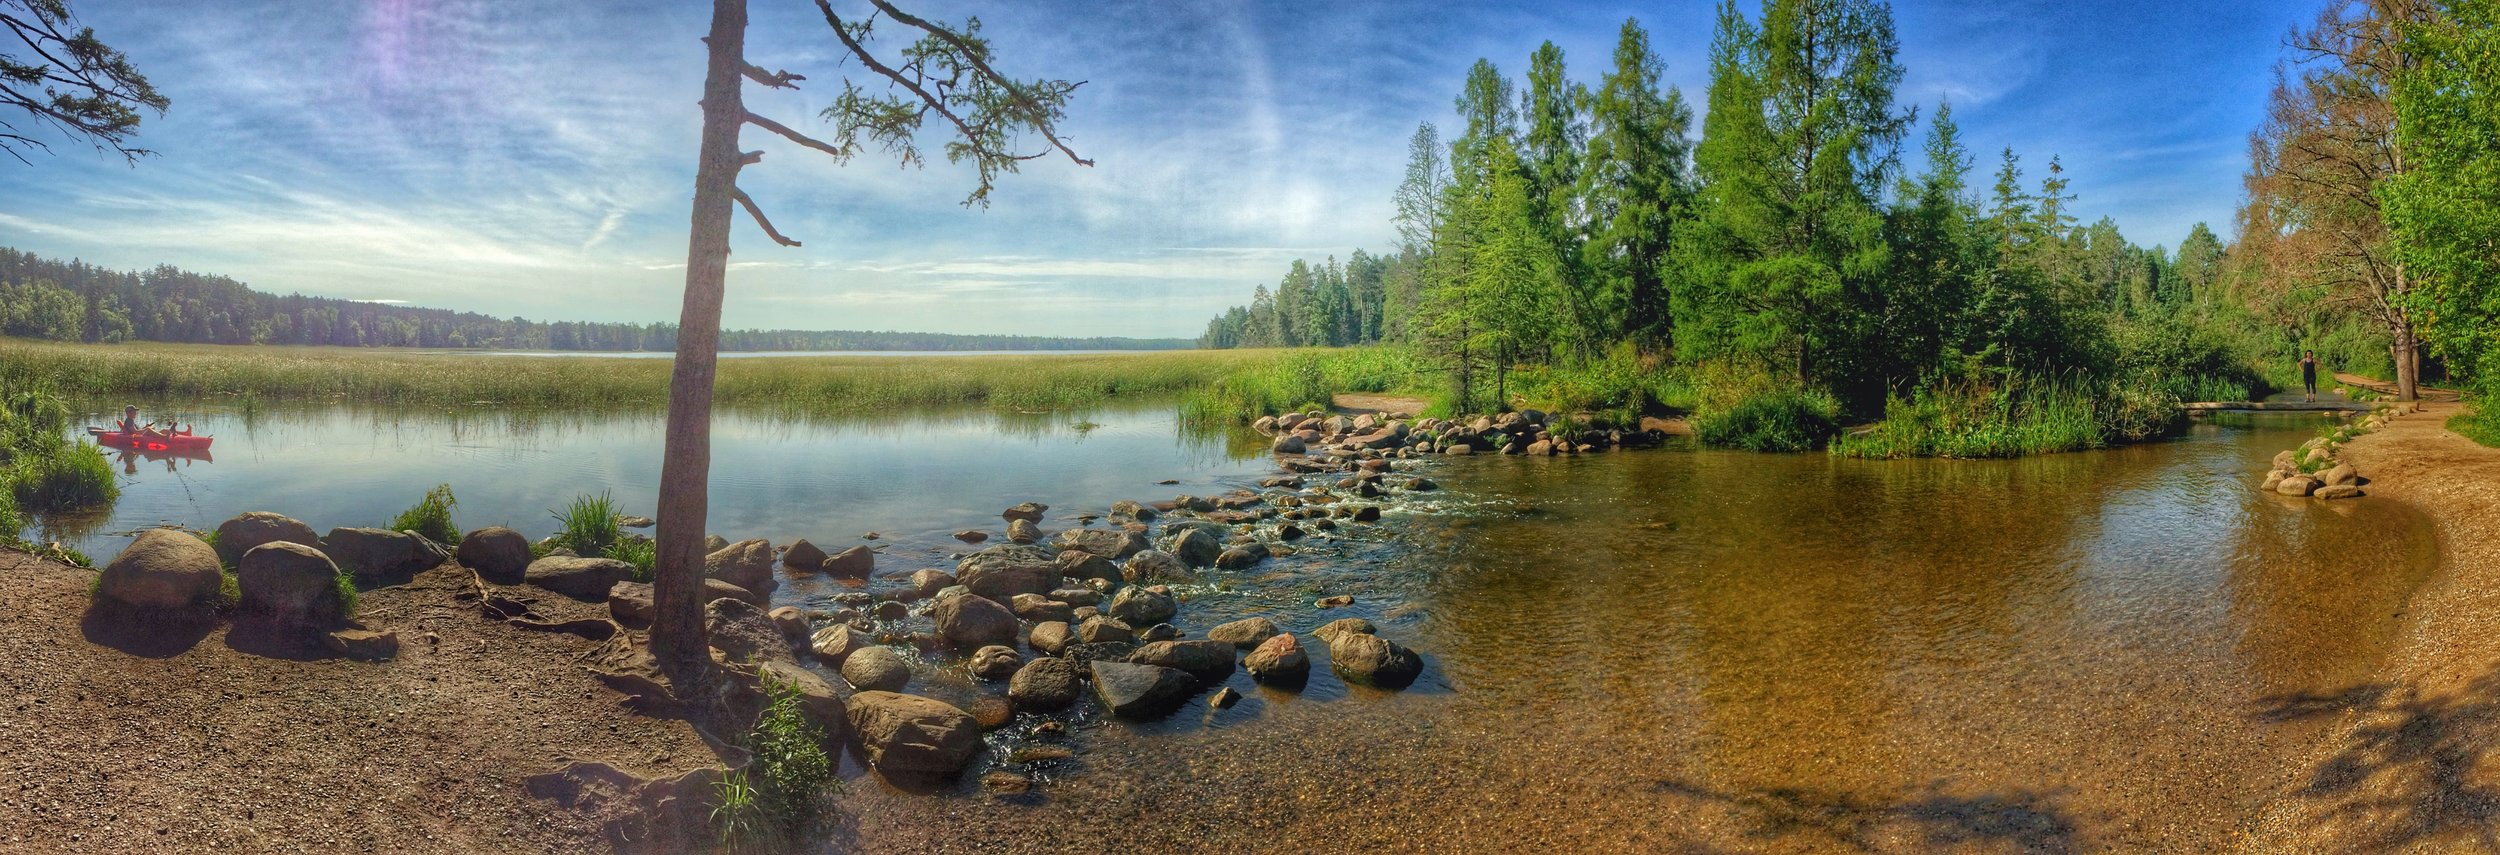 The Mississippi River Headwaters, Lake Itasca, Minnesota